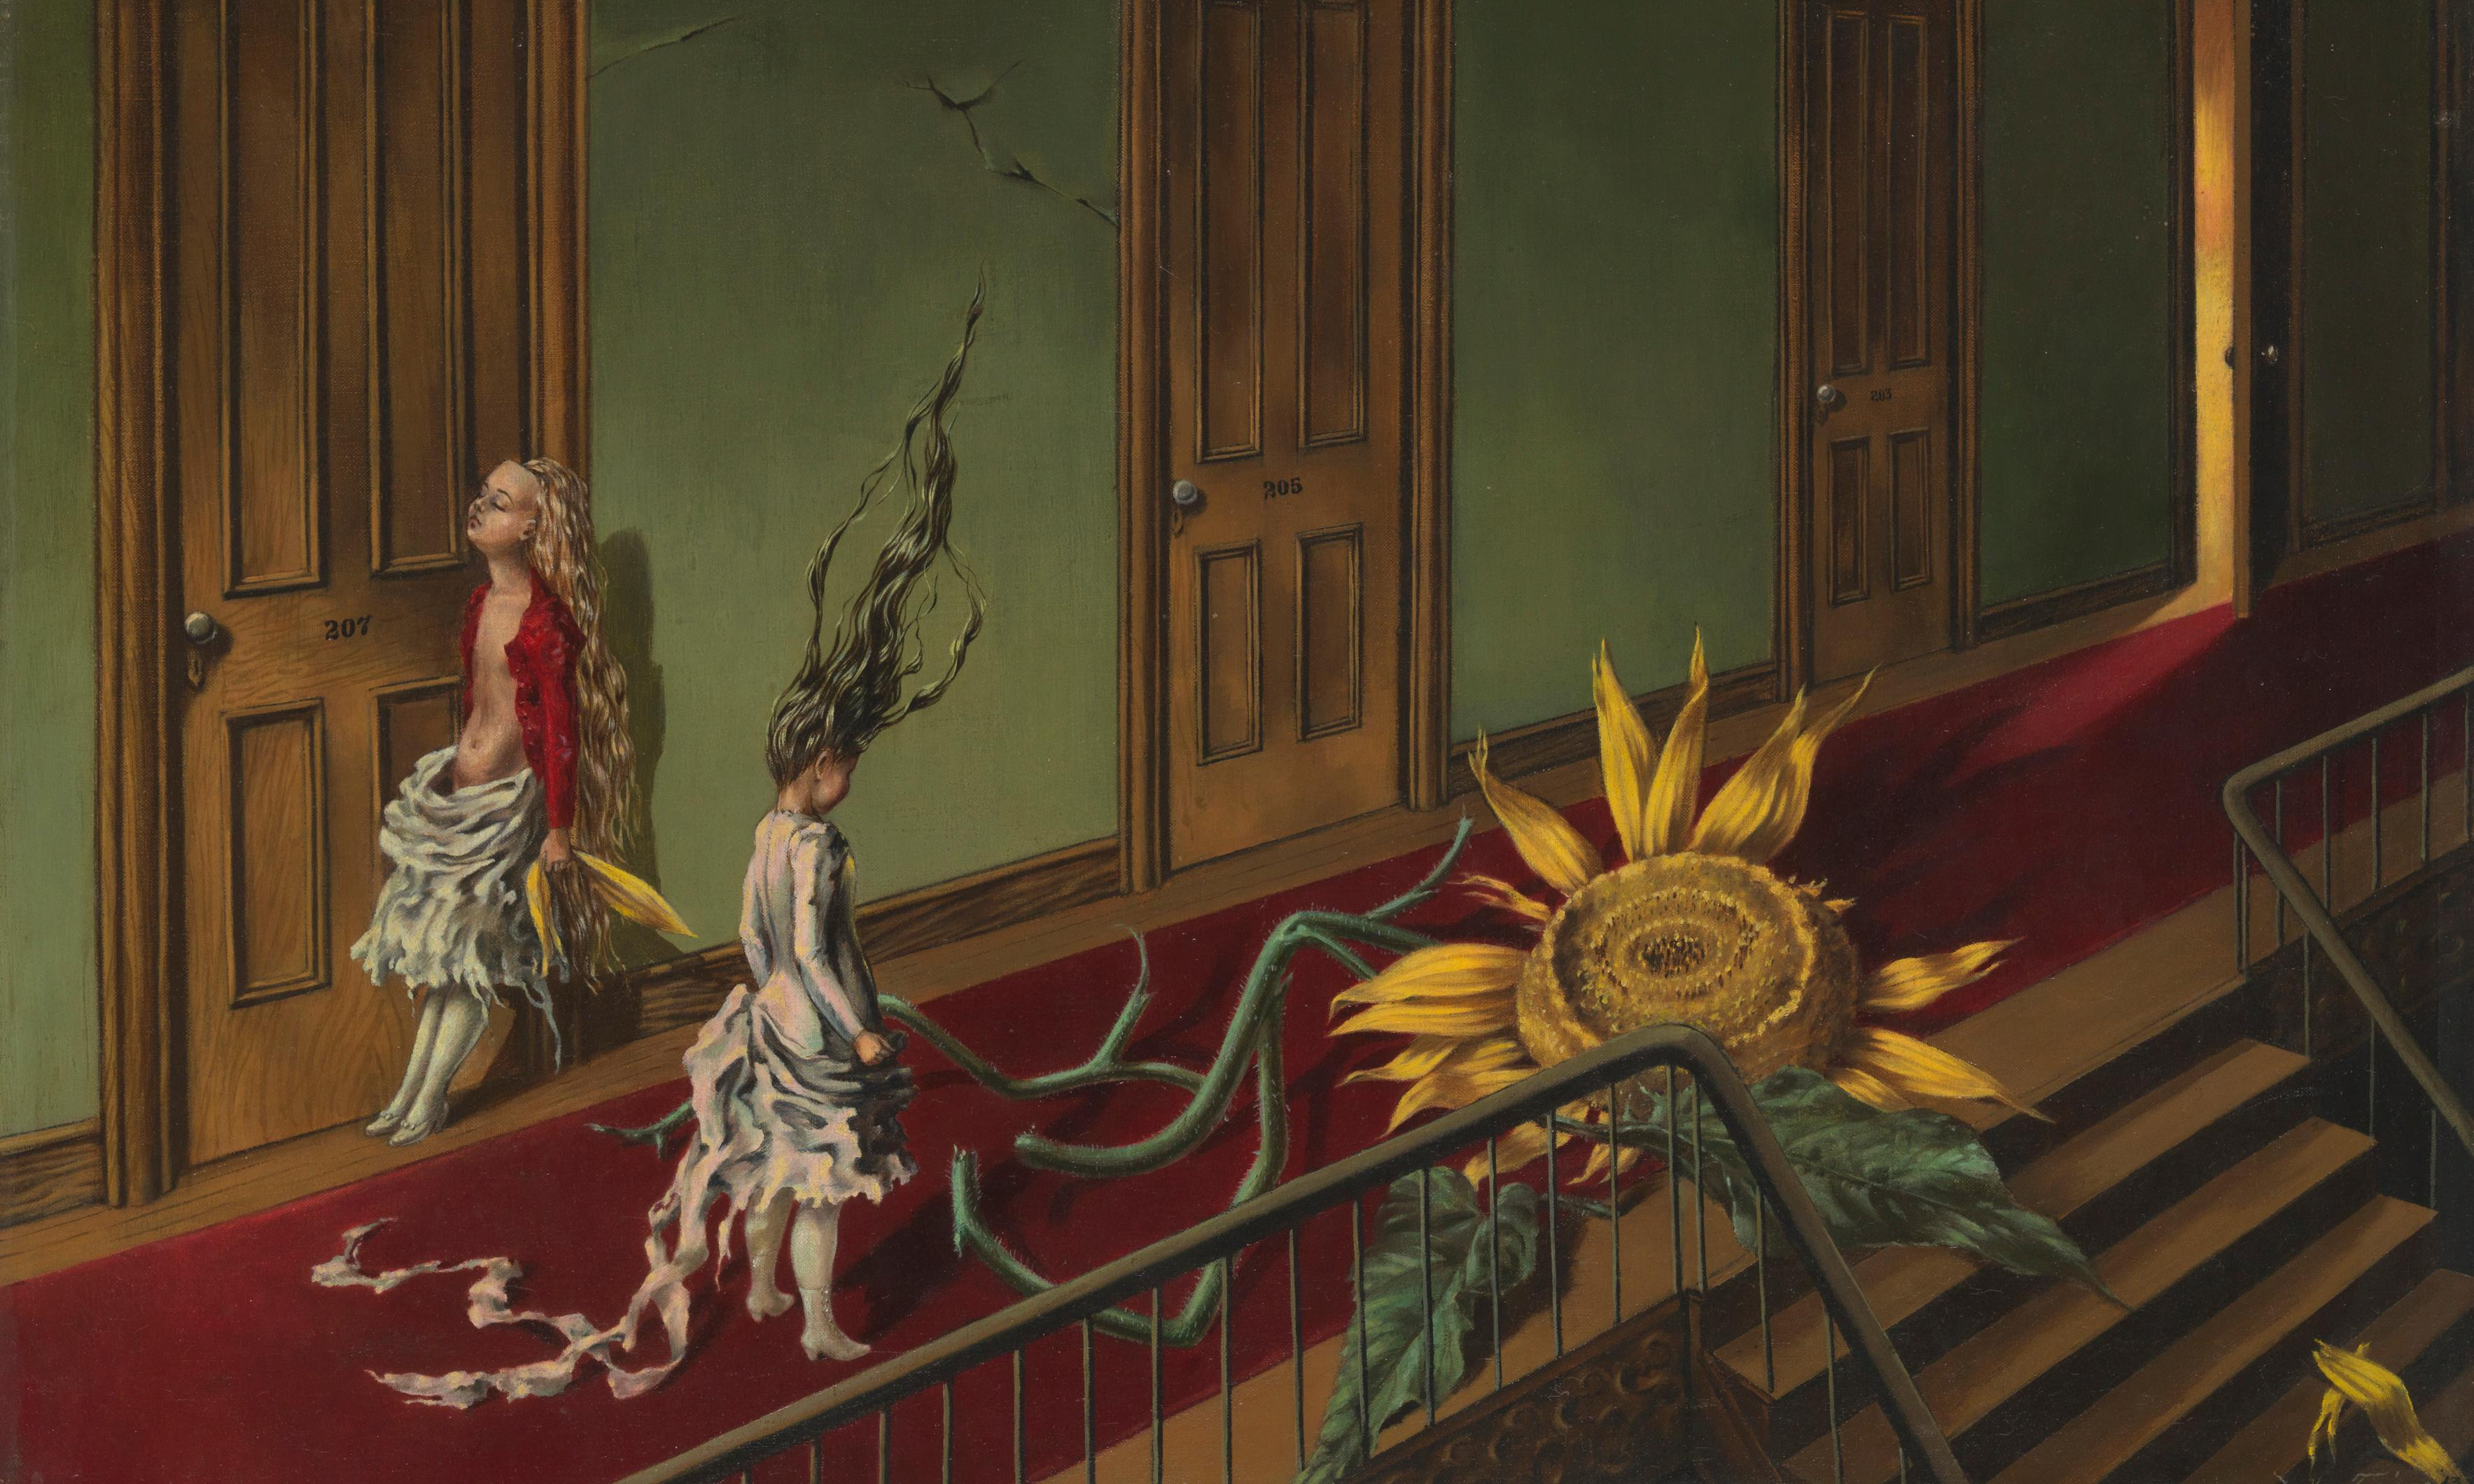 Dorothea Tanning, Tate Modern review – a gorgeous trip through gothic nightmares